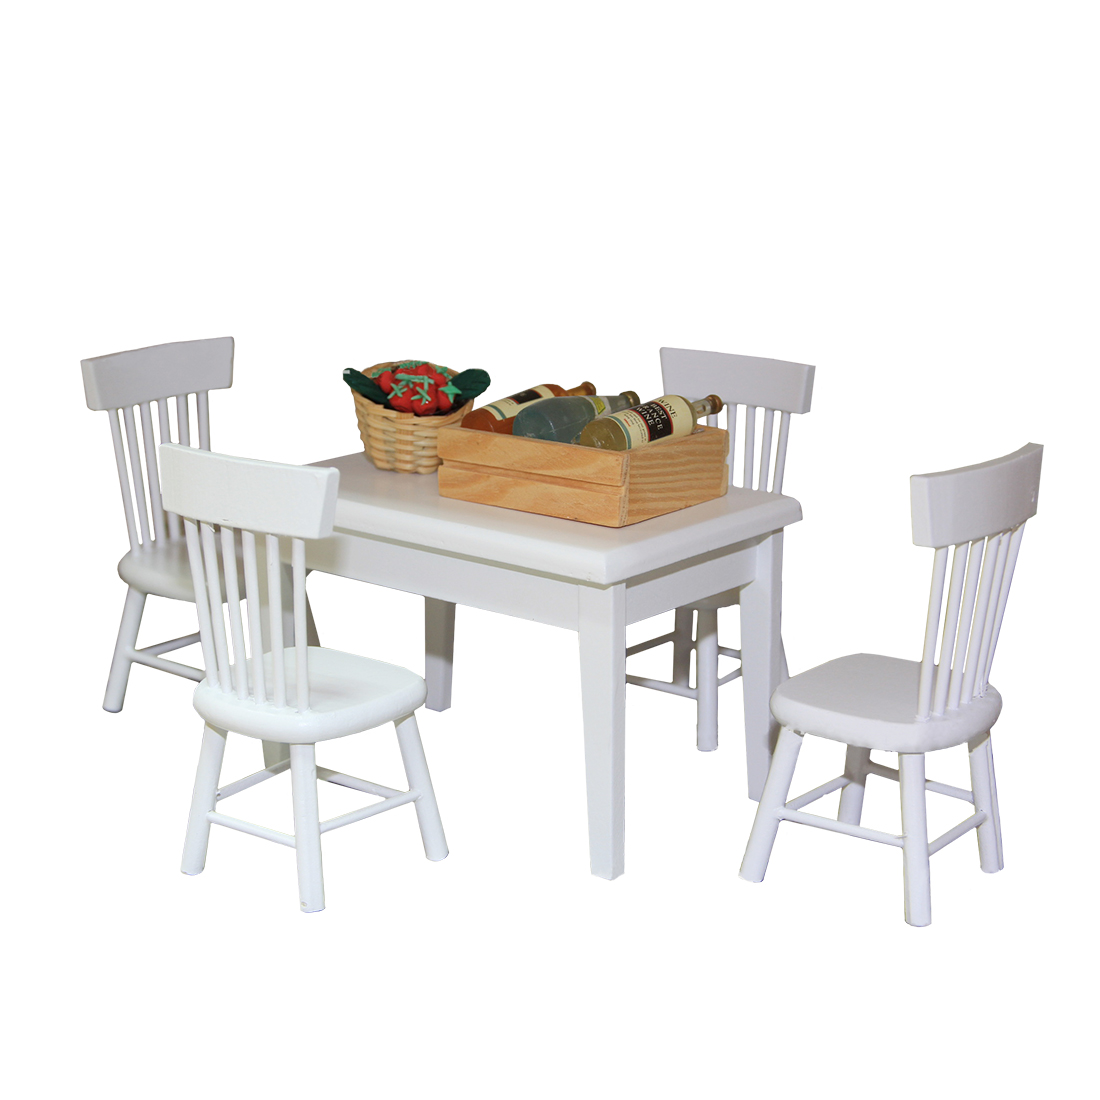 1:12 Birch Children DIY Kitchen Pretend Play Toys Dining Table Chair Set for Girls Kids Playing Kitchen Kits 2018 New Arrival